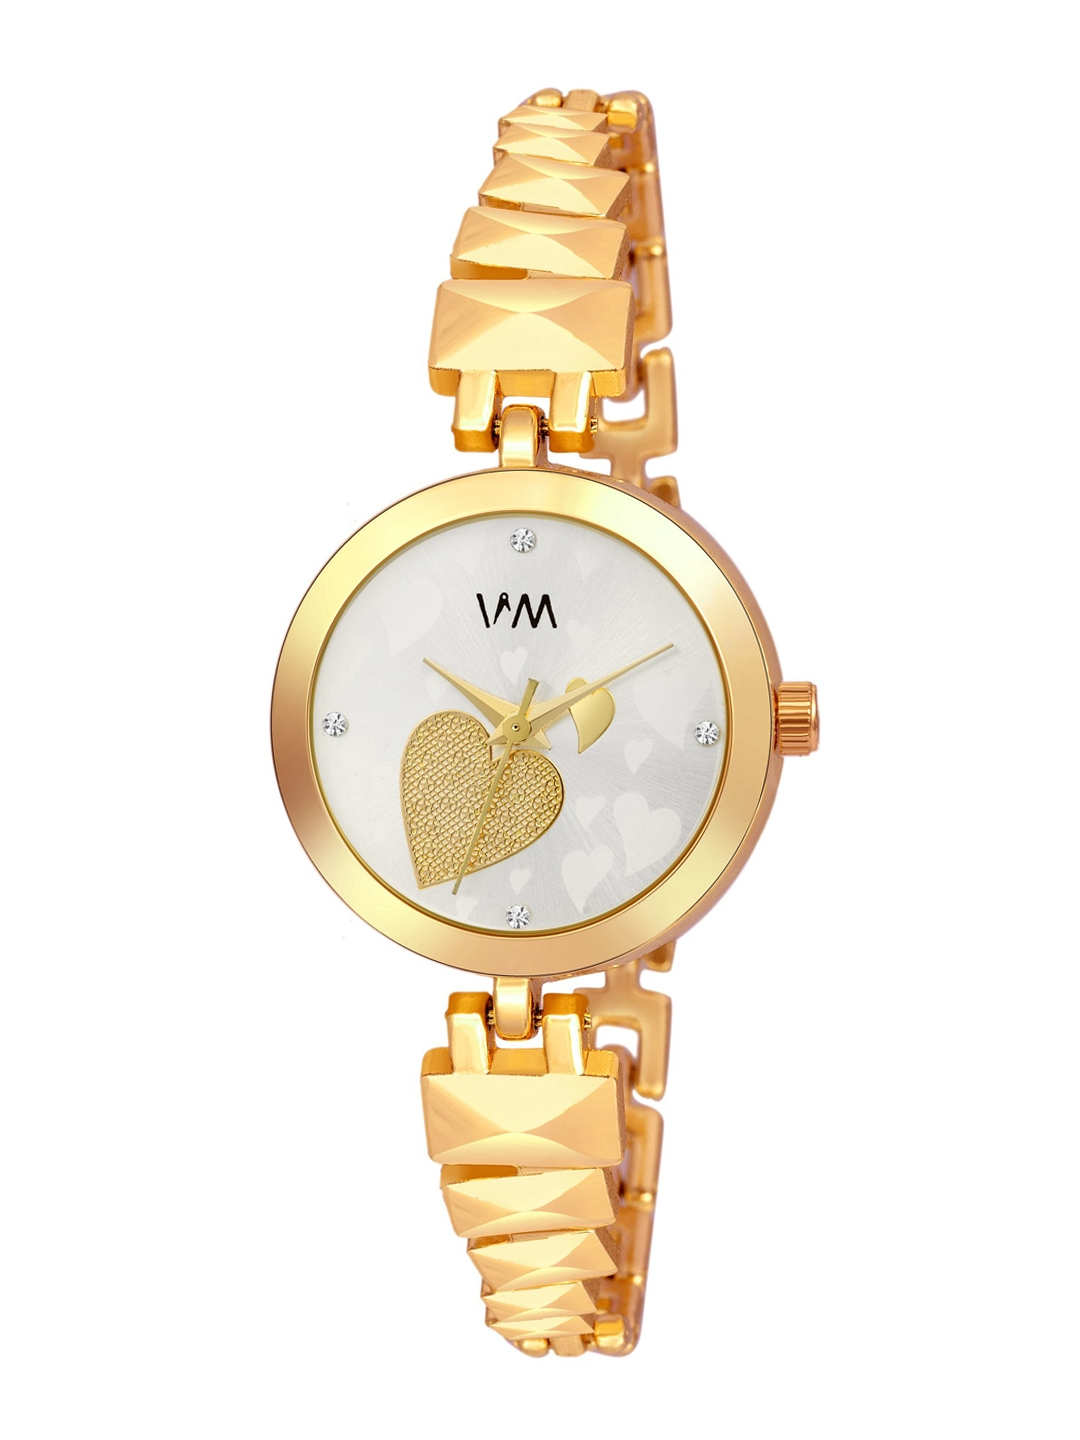 Watch Me Women White Dial   Gold Toned Bracelet Style Straps Analogue Watches   PP 018